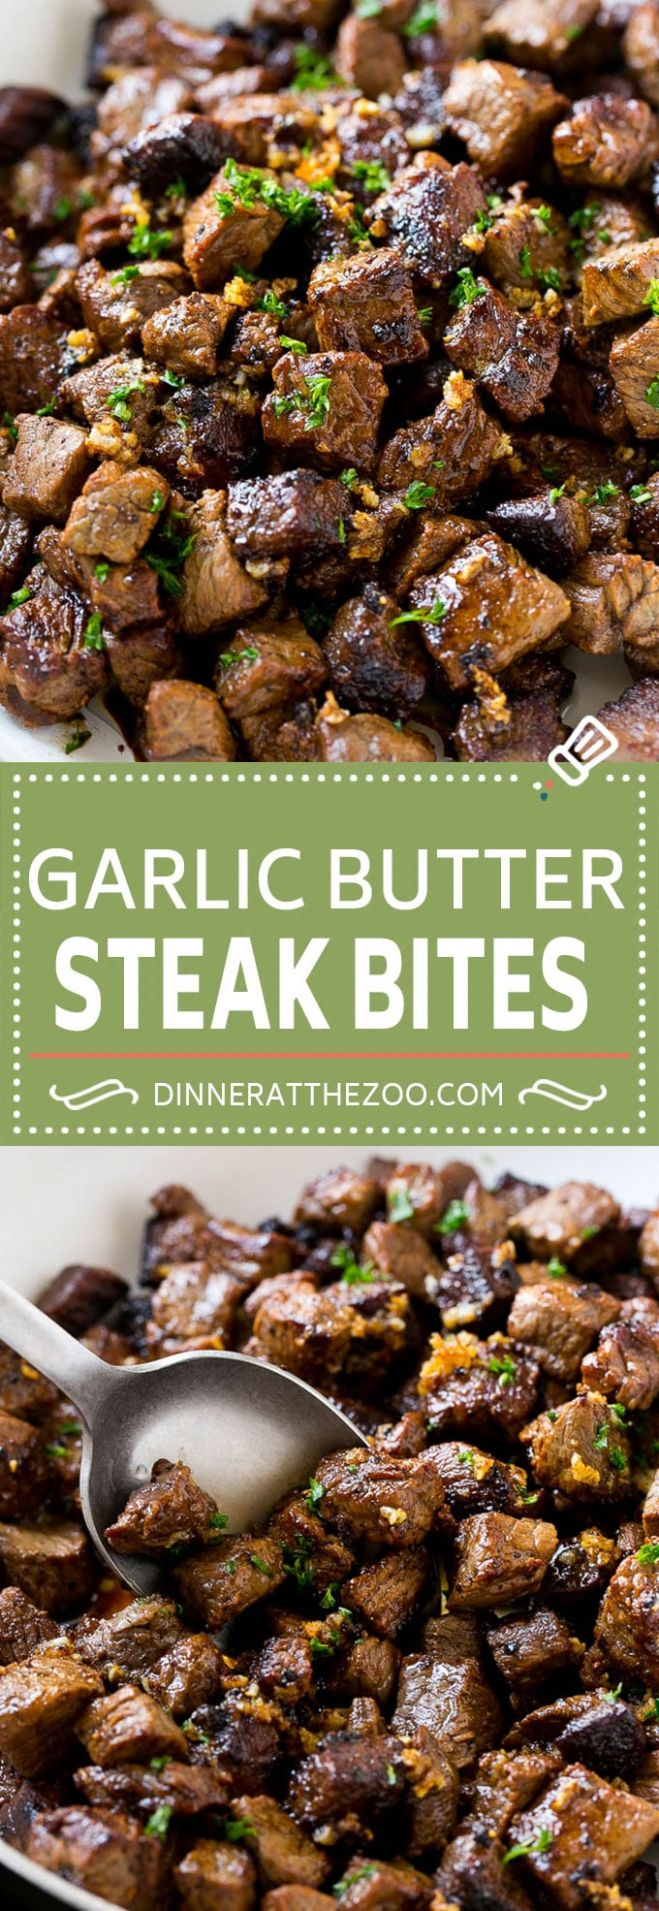 Steak Bites with Garlic Butter - Recipes With Beef Cubes